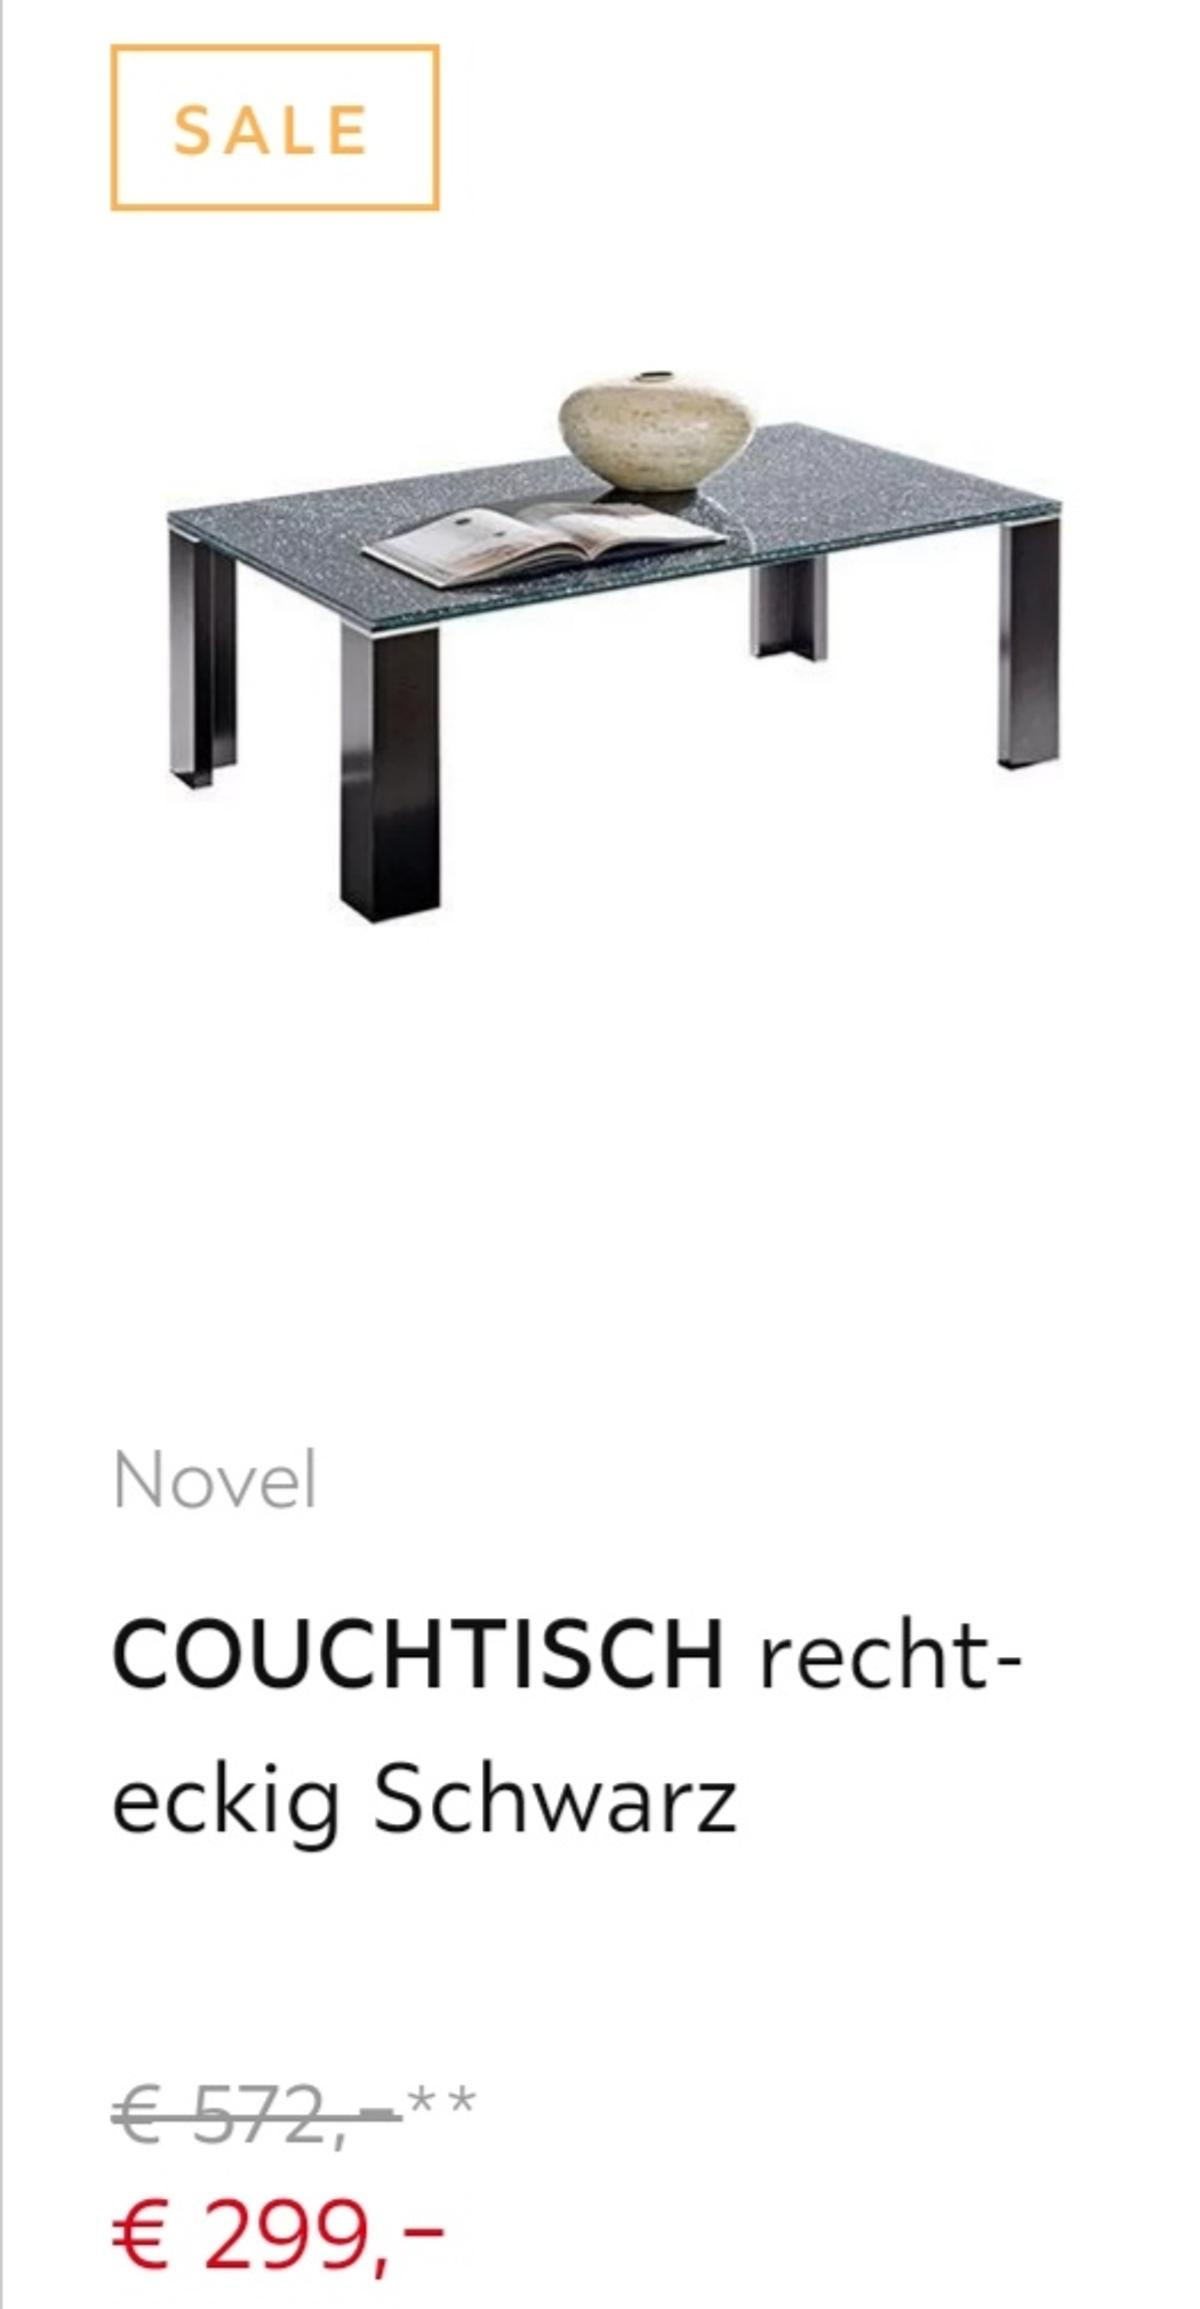 Couchtisch Crashglas Optik In 6850 Stadt Dornbirn For 30 00 For Sale Shpock